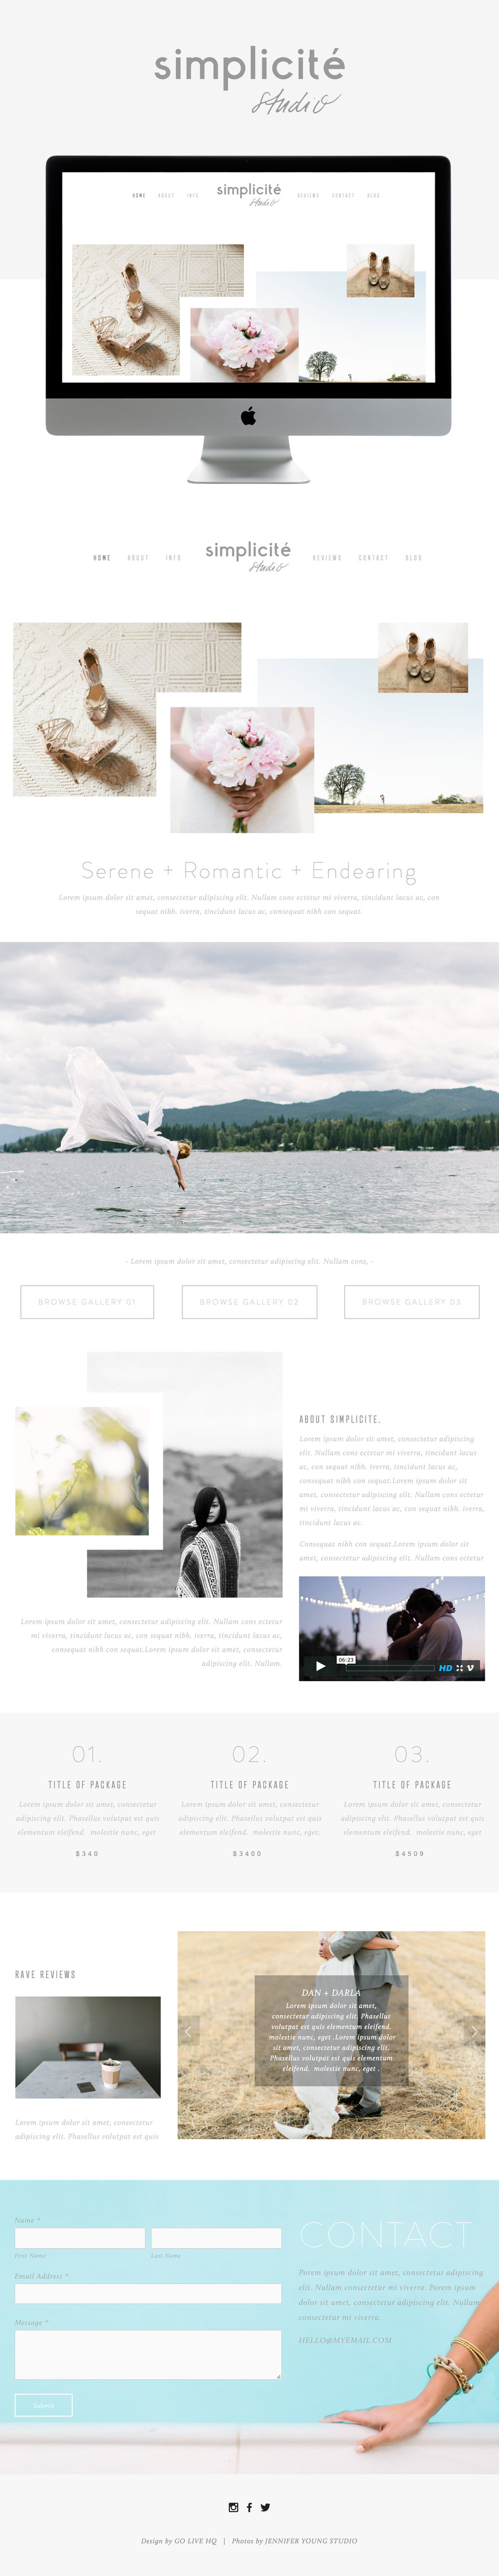 simple squarespace website by Go Live Hq